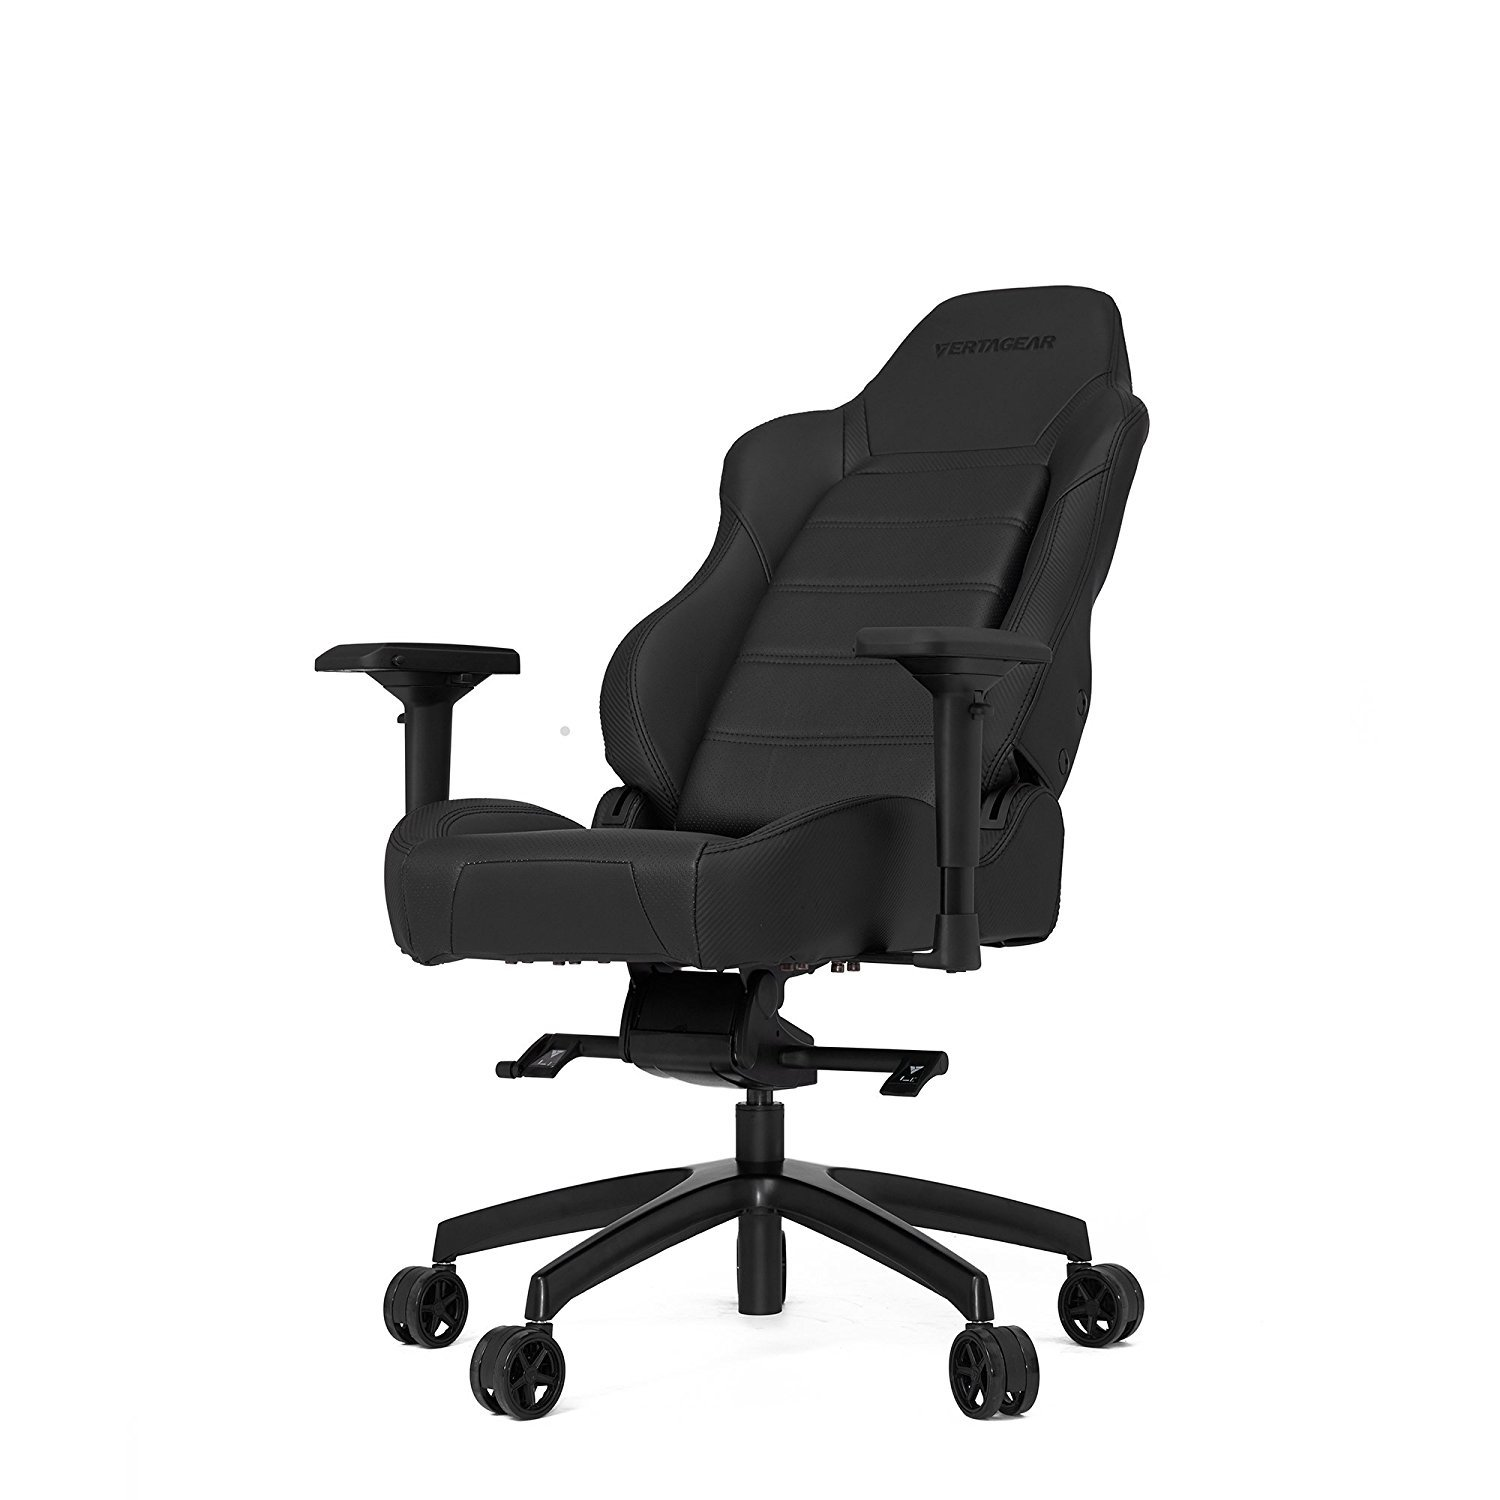 Vertagear Racing Series S-Line PL6000 Gaming Chair - Black/Carbon for  image